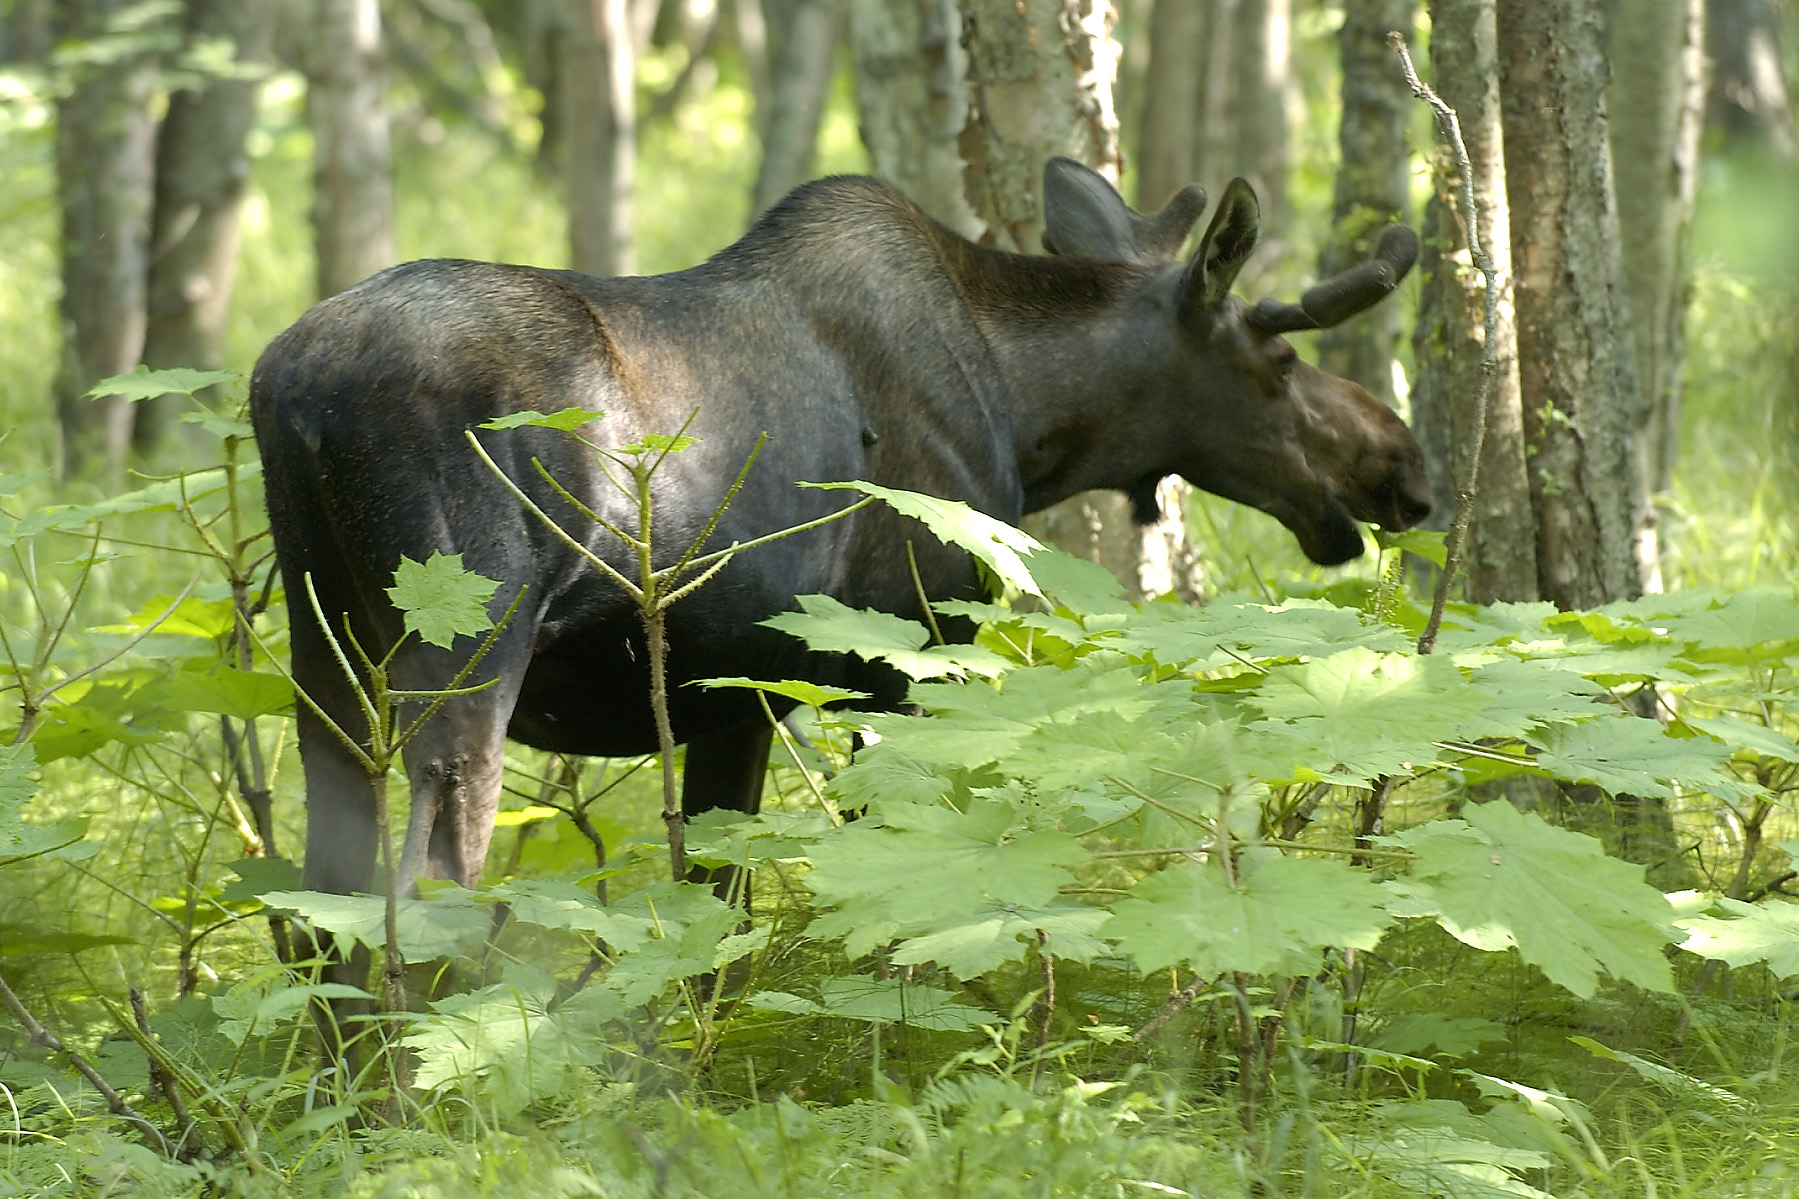 We were terribly distracted by the moose along the trail, which were browsing just off the trail, but the locals rode, strode, and bladed by without a sideways glance!